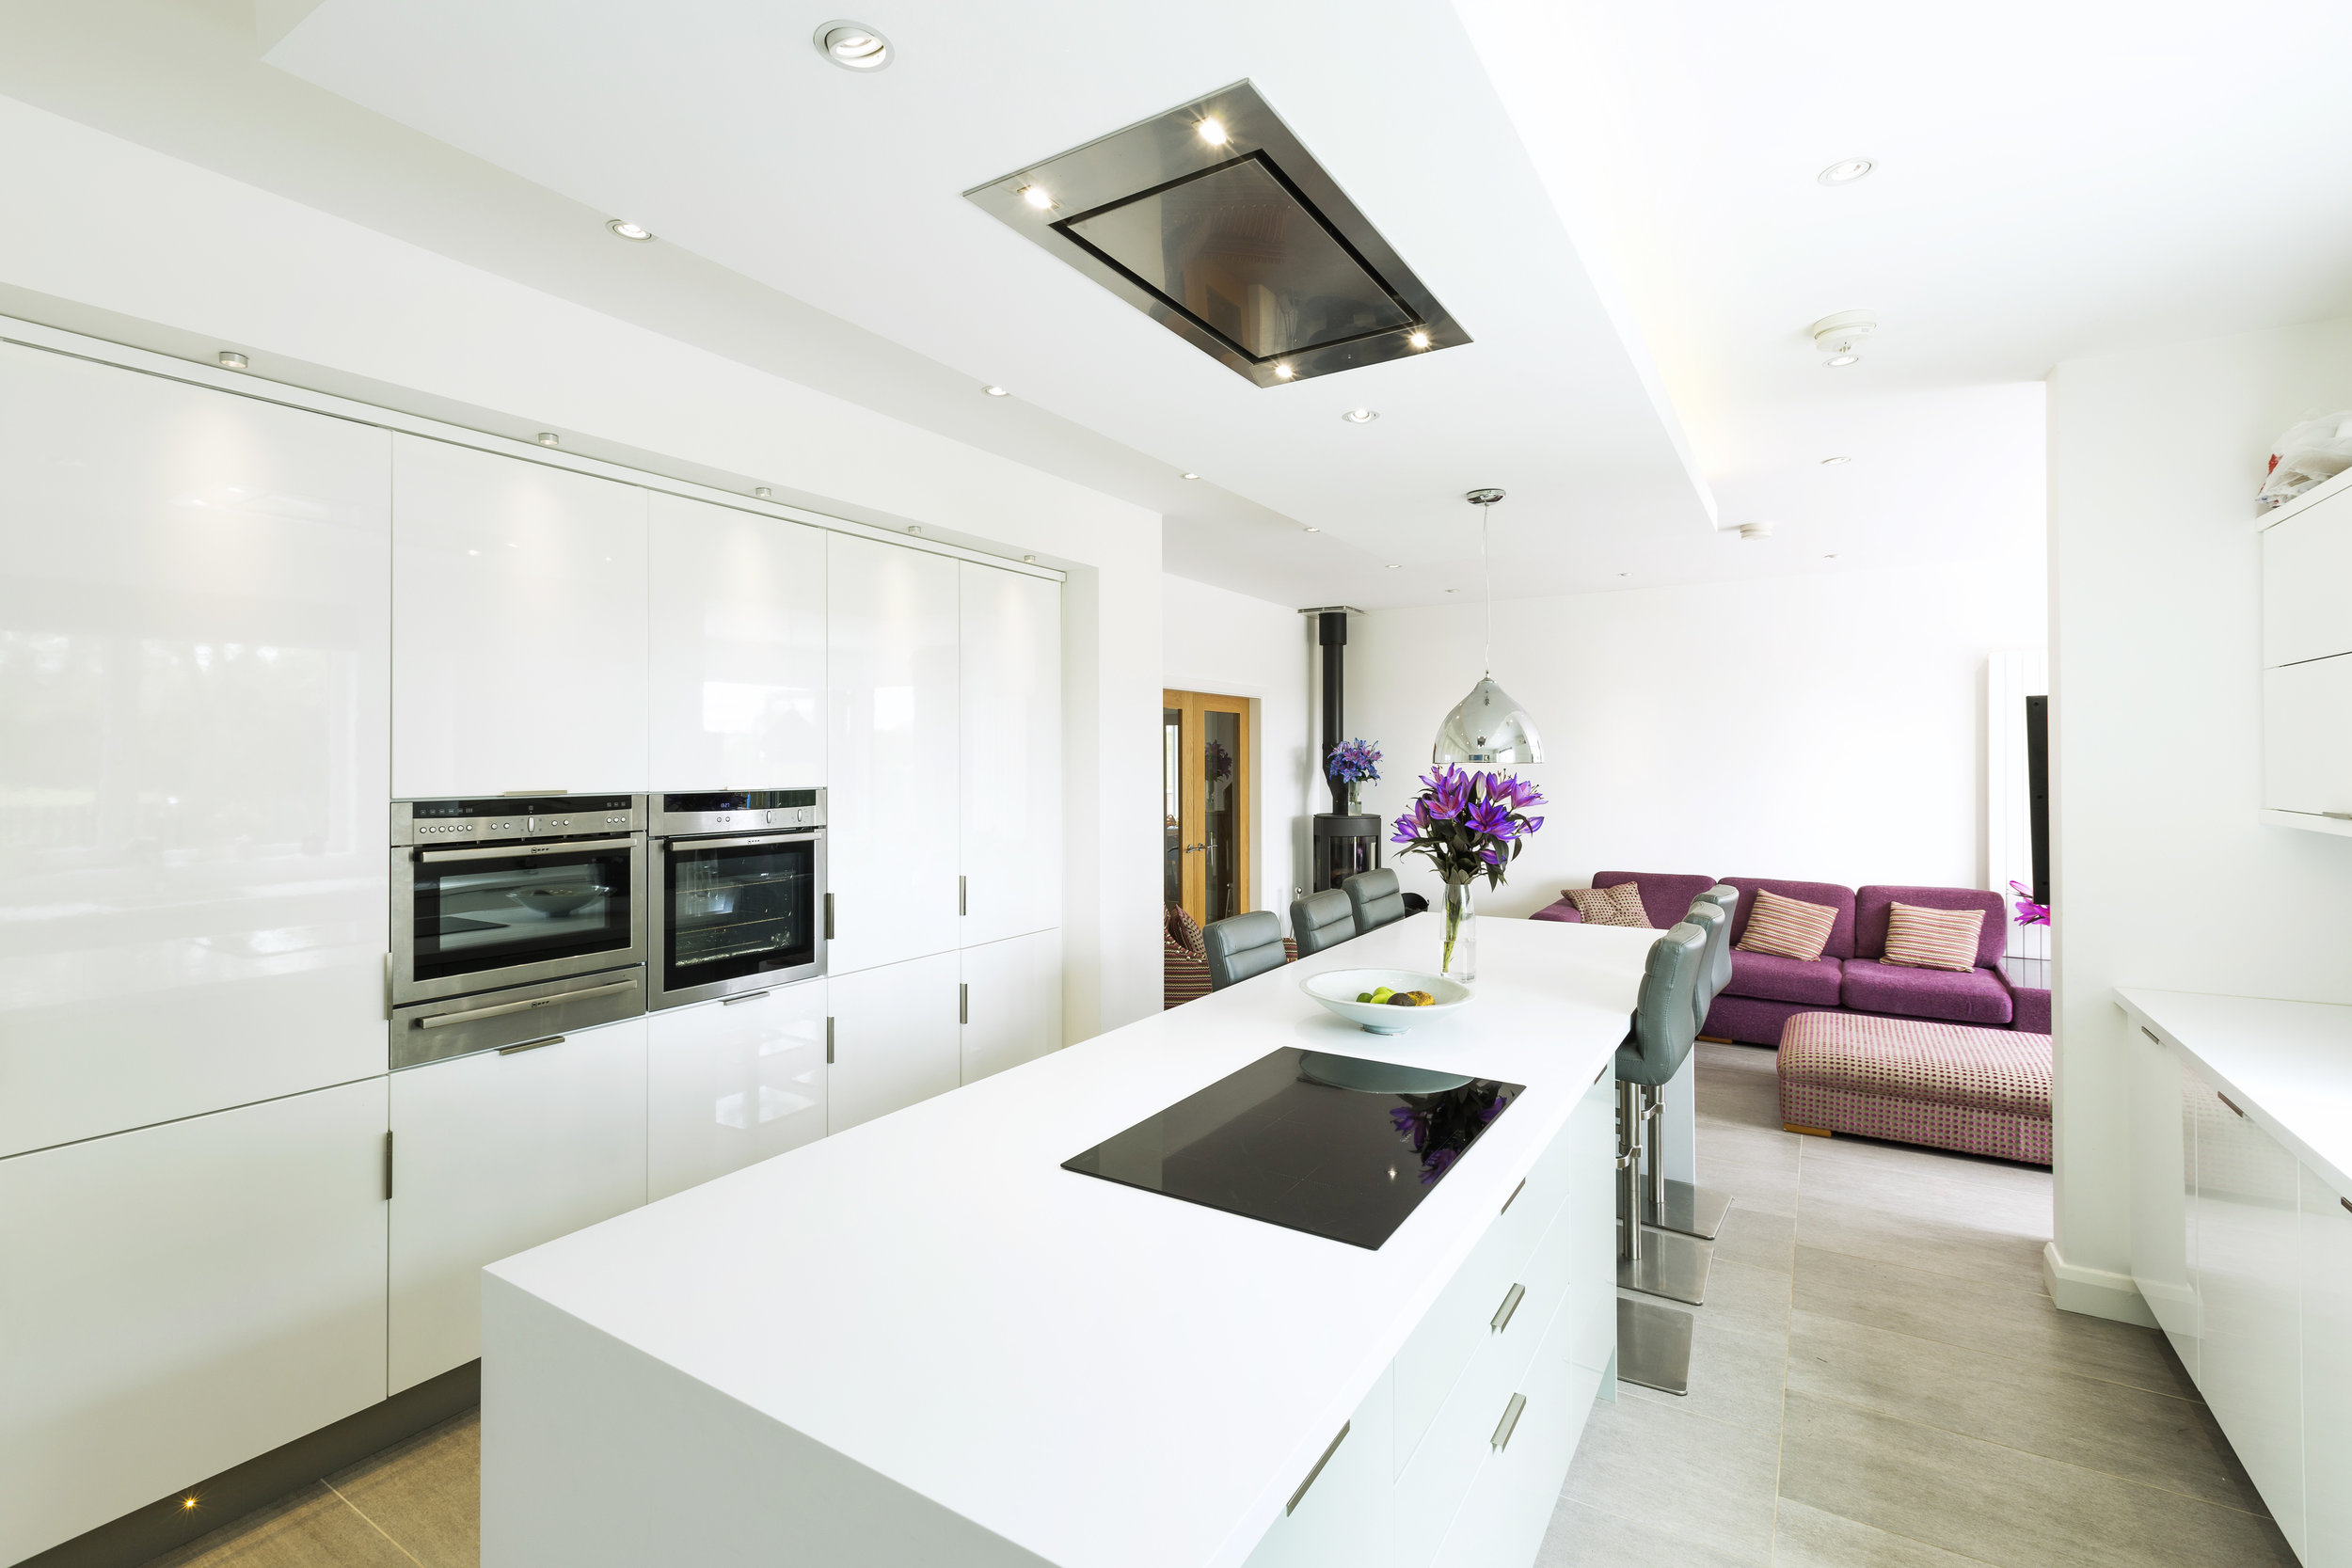 House Extensions - Bespoke House Extensions & Renovations